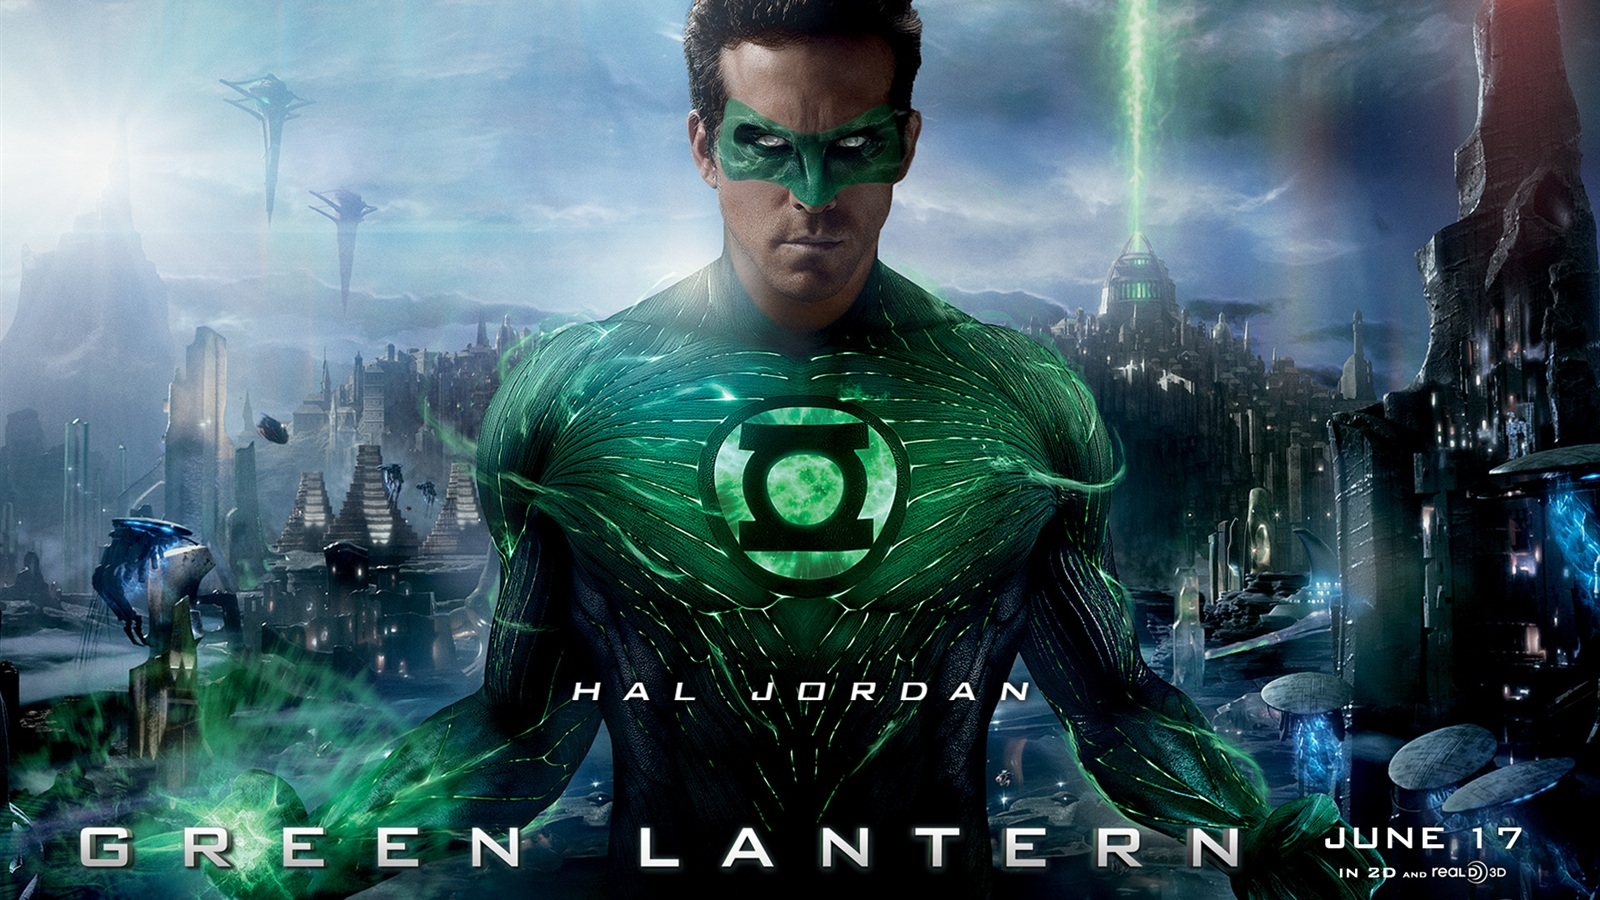 Ryan Reynolds in Green Lantern wallpaper - 1600x900